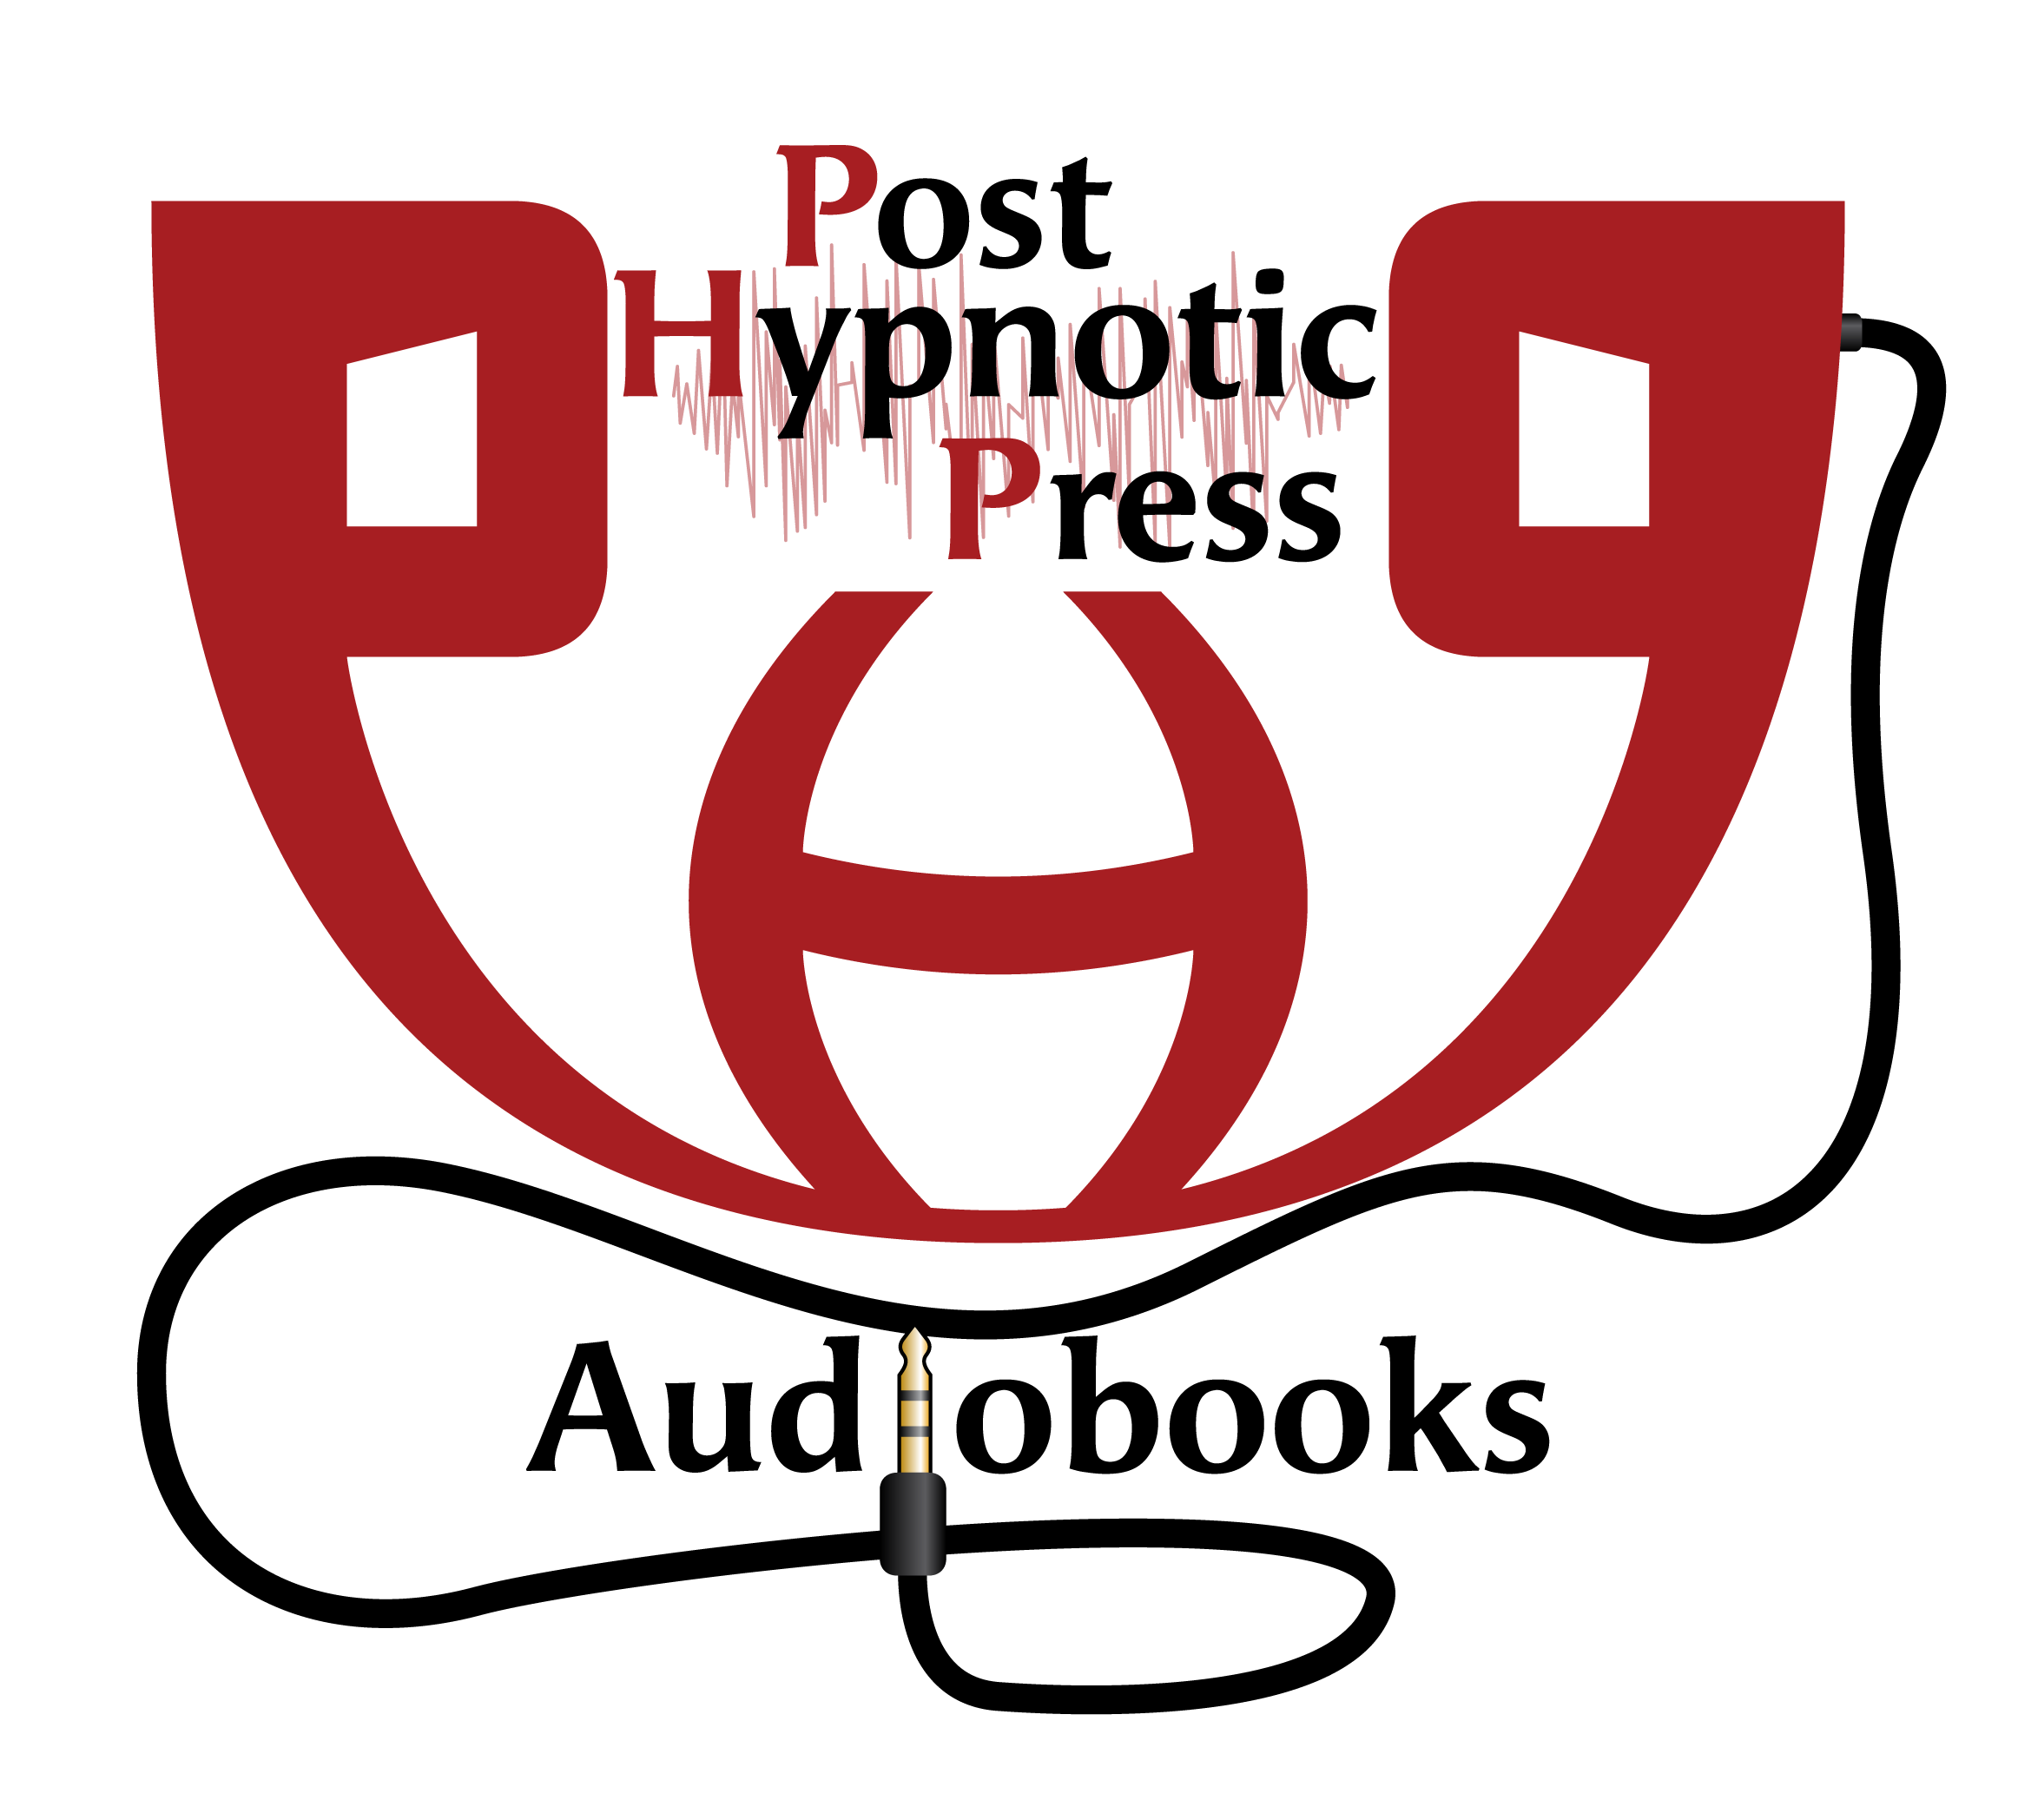 POST HYPNOTIC PRESS AUDIOBOOKS